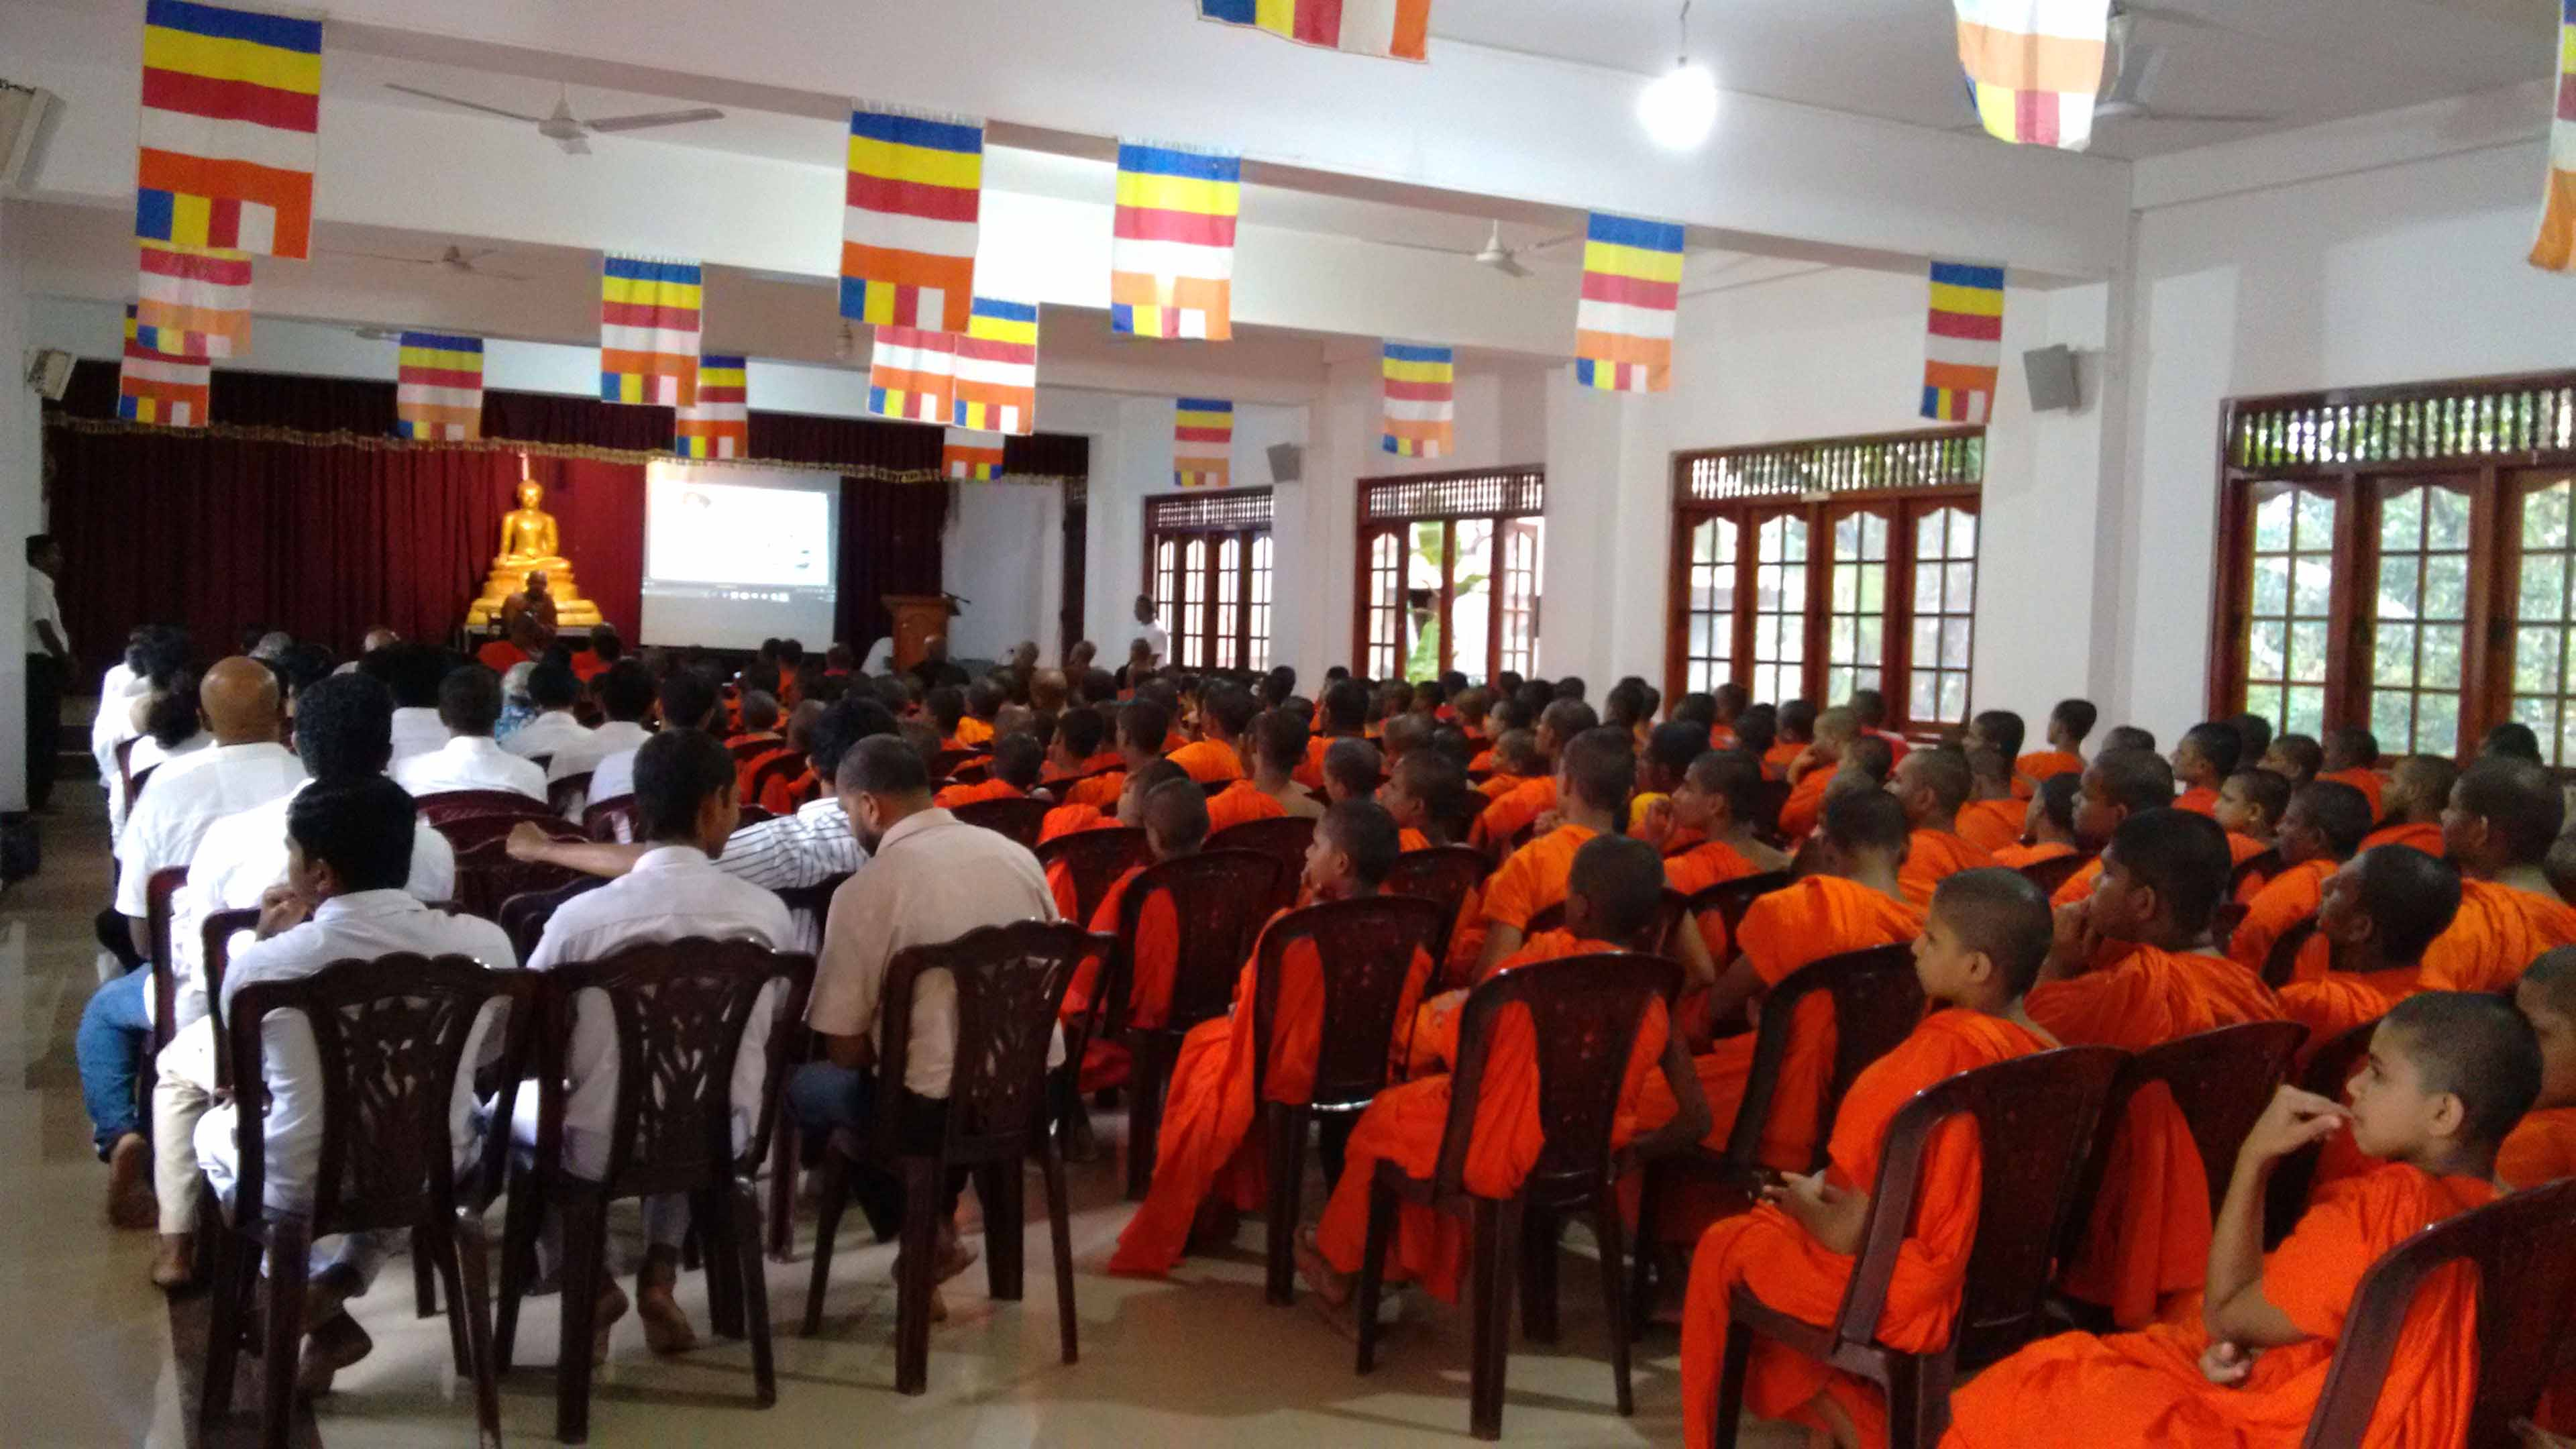 Sati Pirivena Introduction Programme at Mahavihara Maha Pirivena - Asgiriya, Kandy (1)